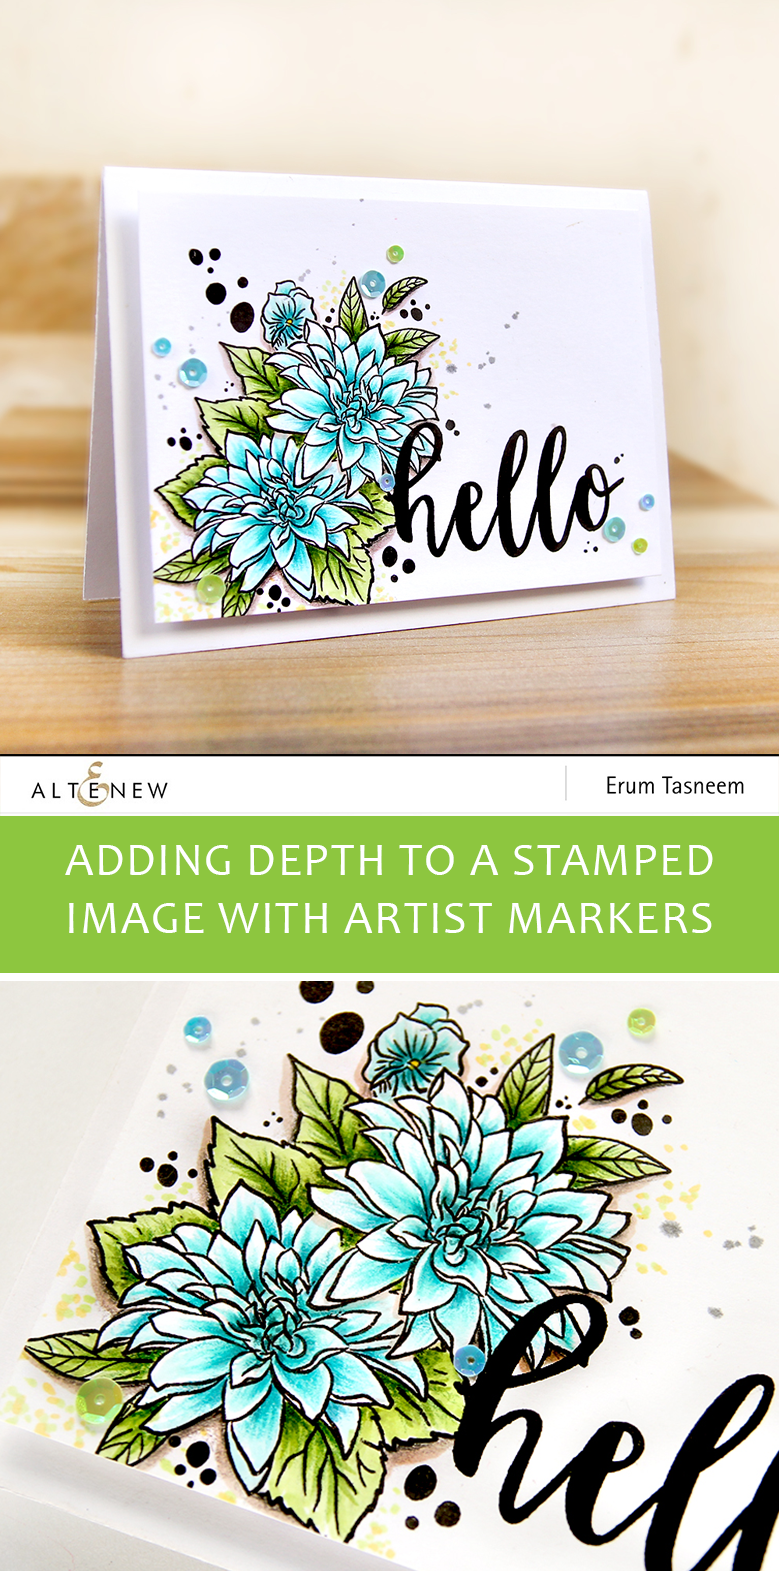 Altenew Blooming Bouquet Stamp Set coloured with Artist markers | Erum Tasneem | @pr0digy0